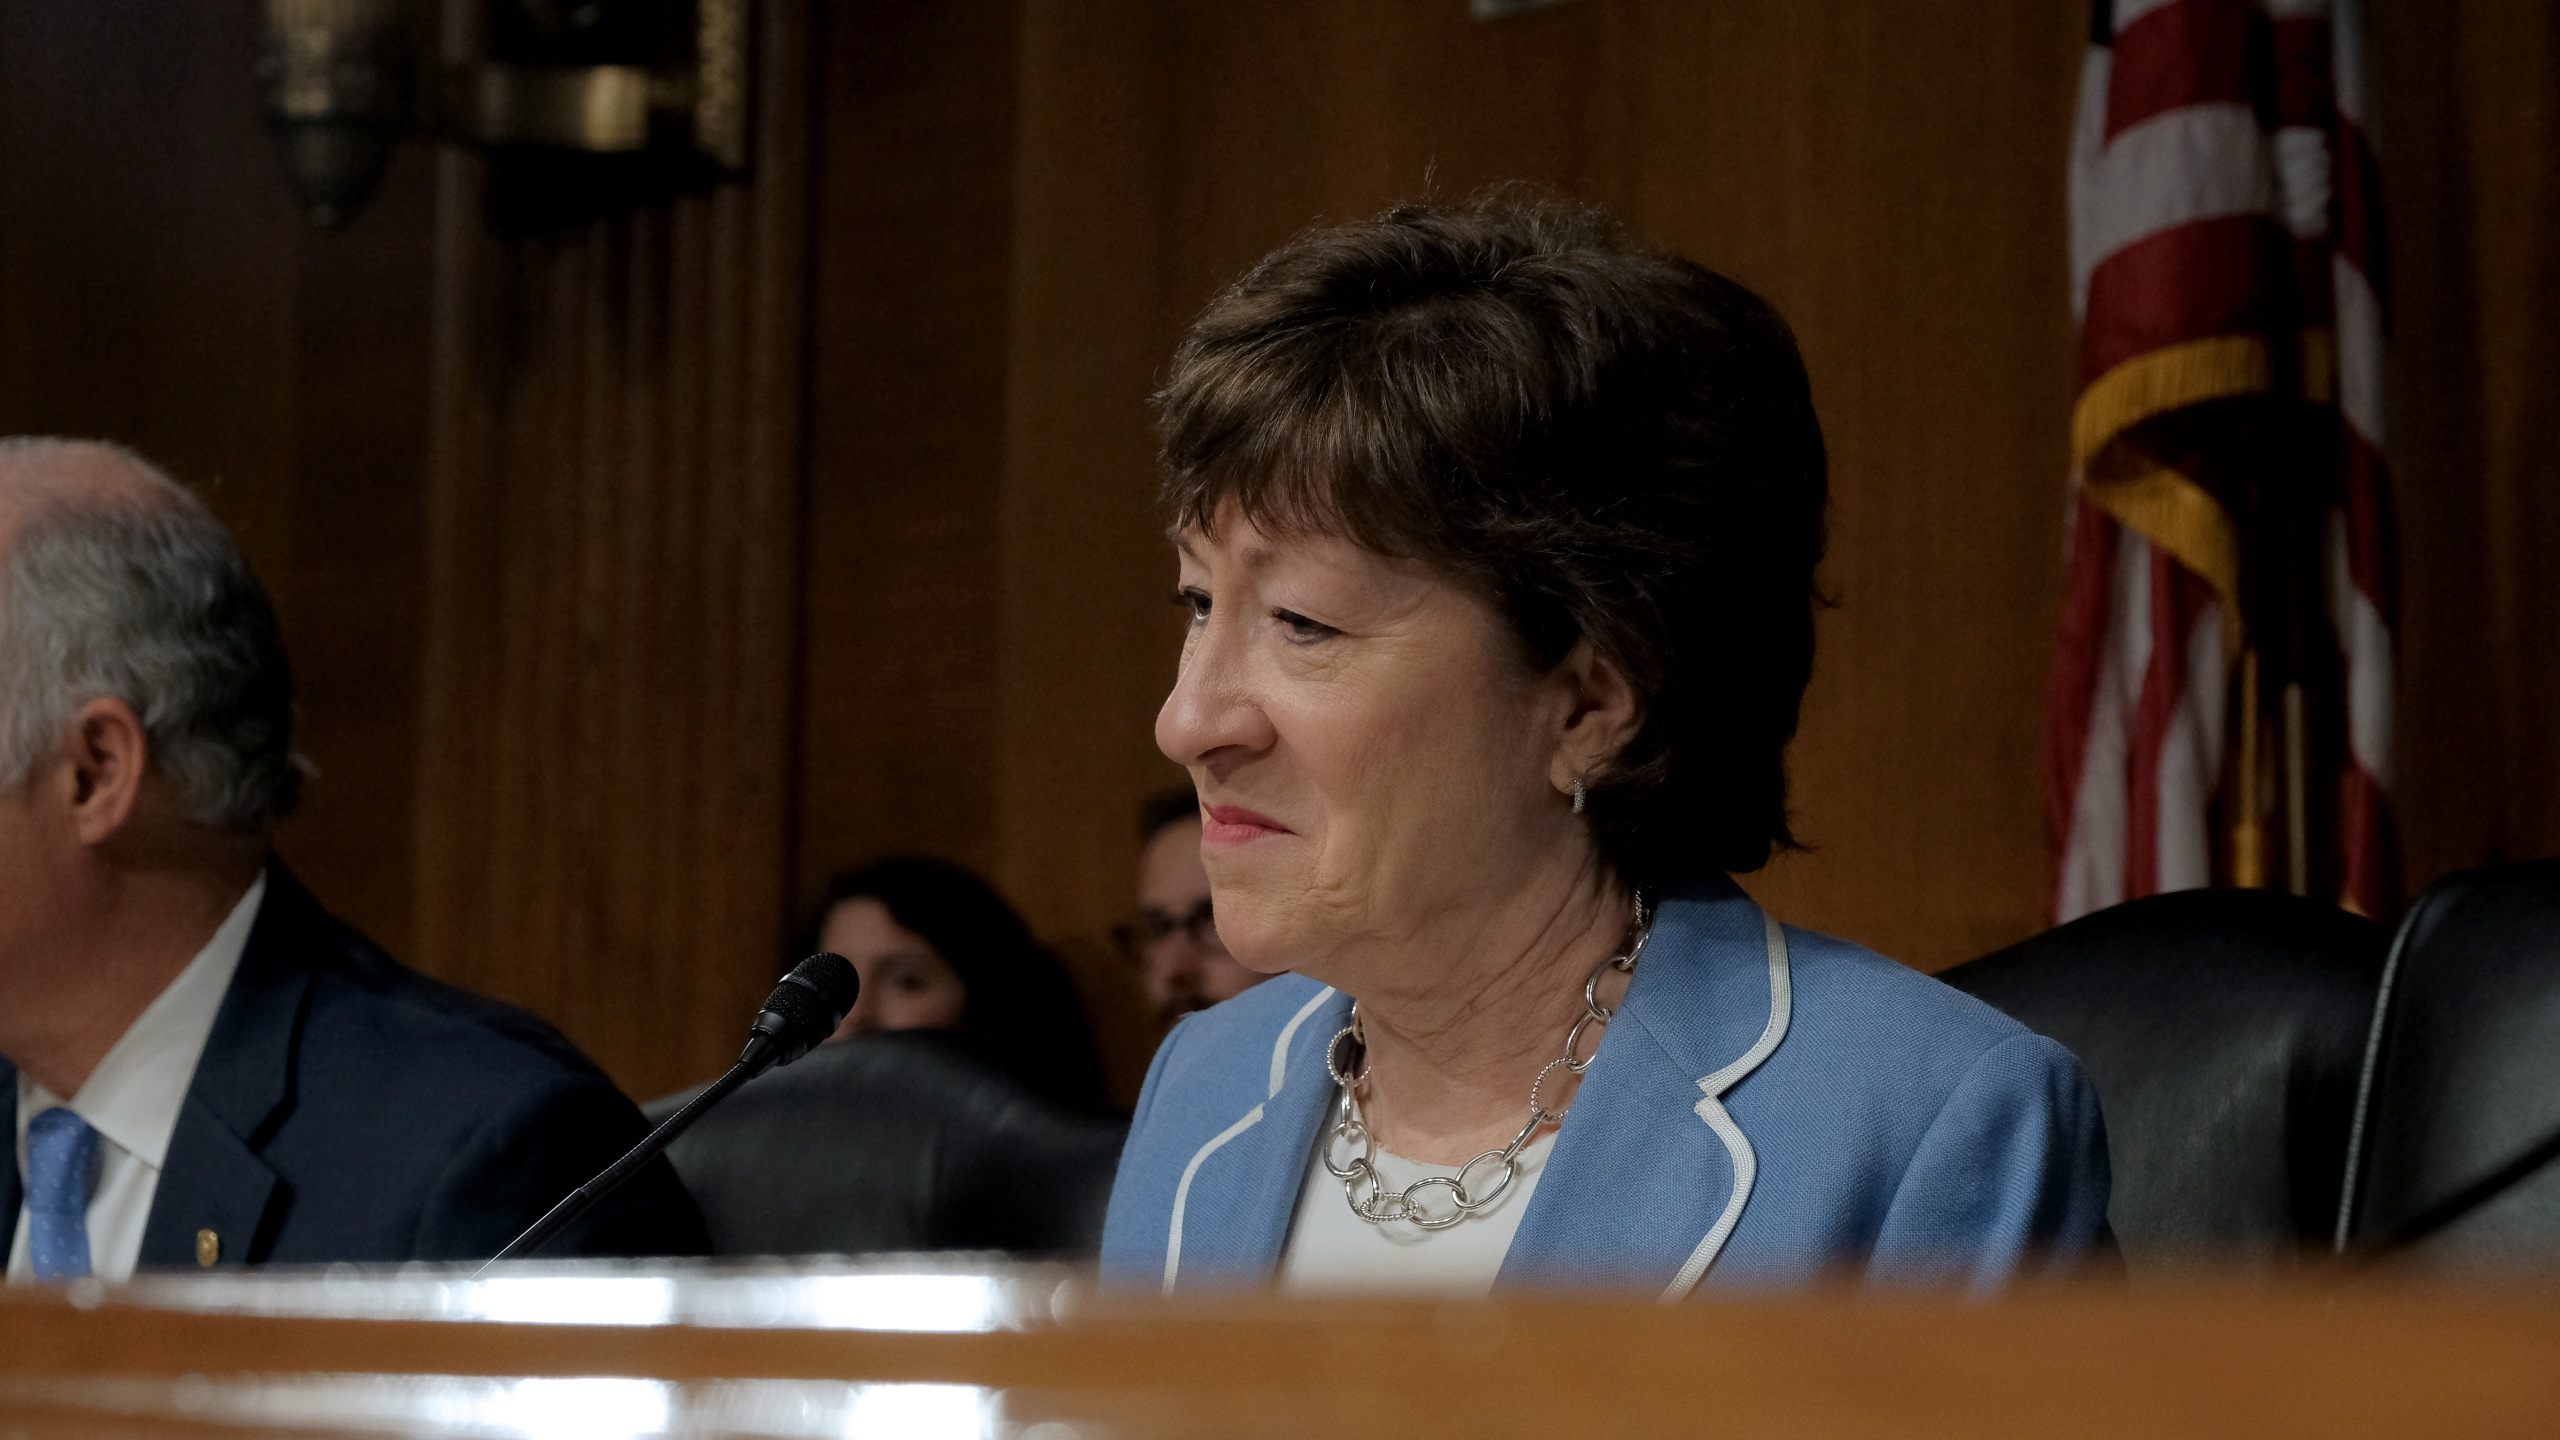 U.S. Senator Susan Collins speaks at the hearing on Type 1 Diabetes at the Dirksen Senate Office Building on July 10, 2019 in Washington, DC. (Credit:Jemal Countess/Getty Images)